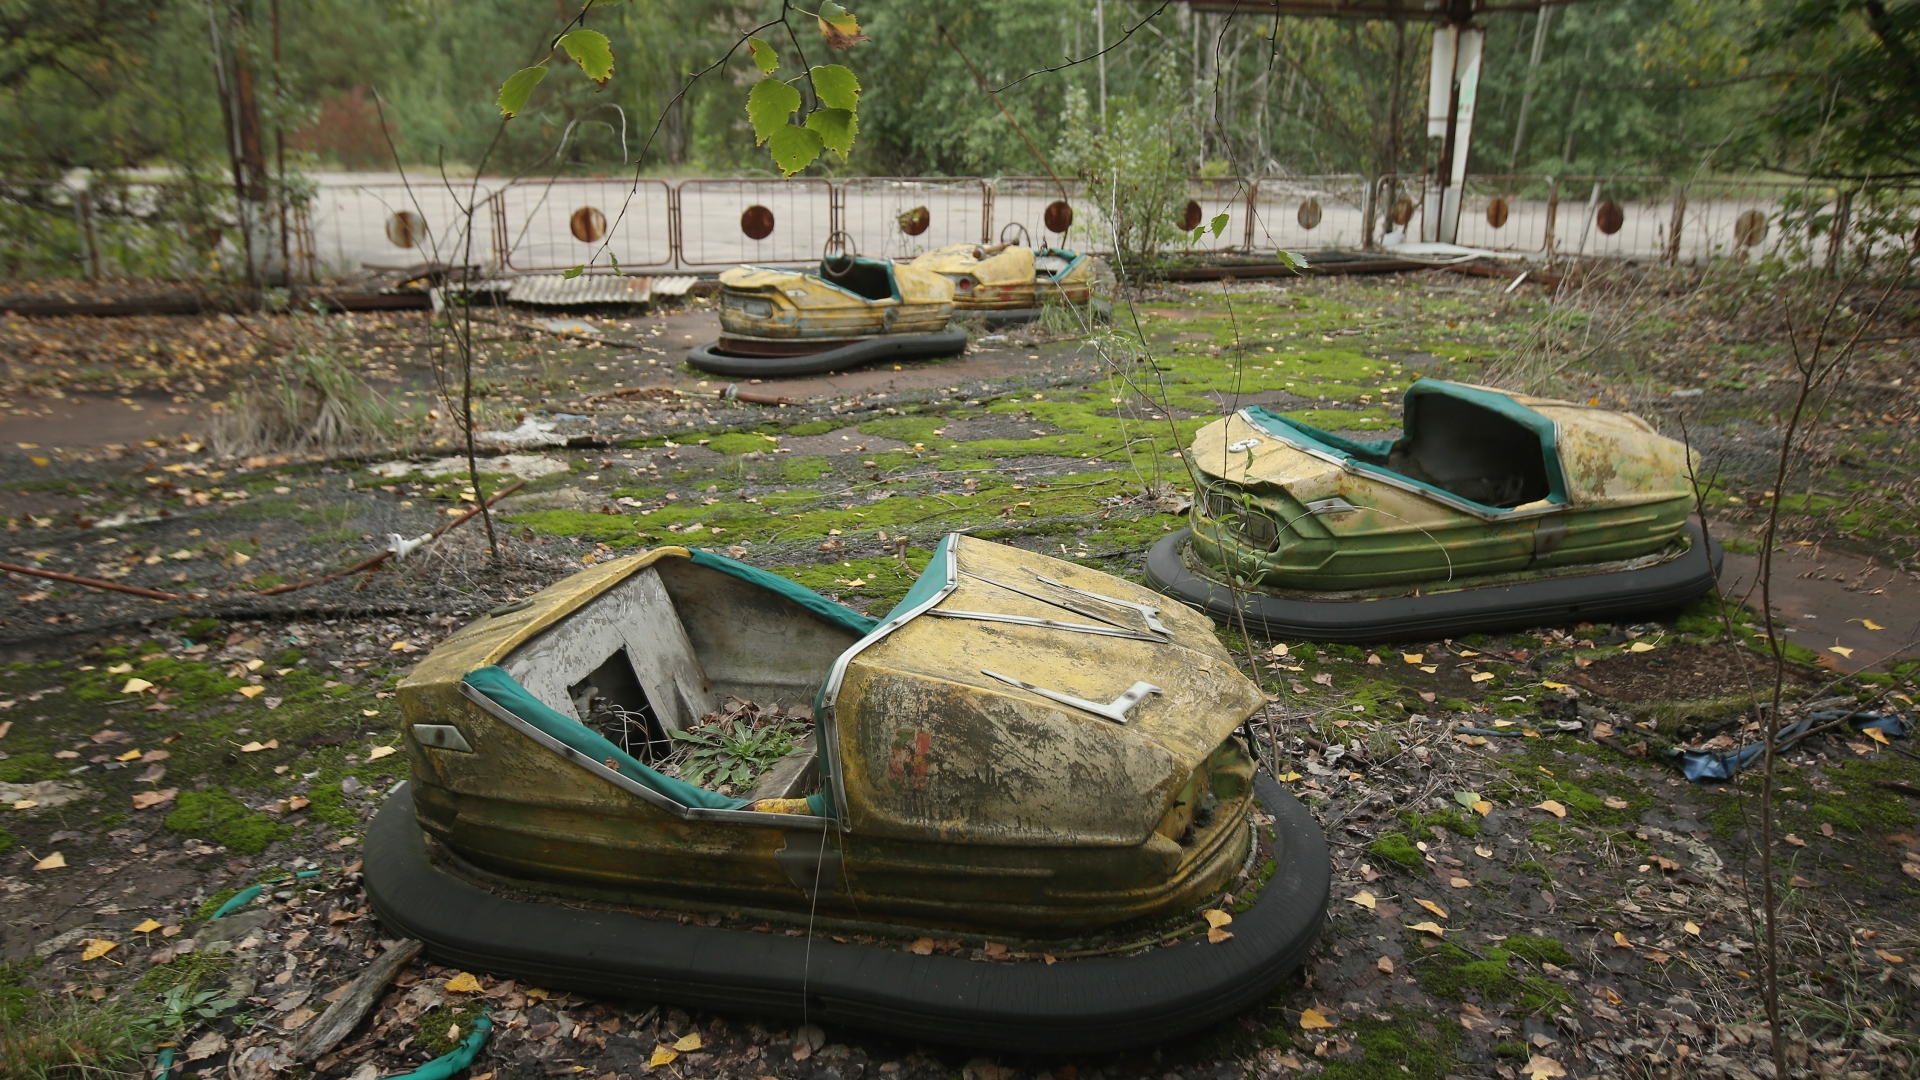 Bumper cars stand in an abandoned amusement park in Prypiat, Ukraine, only a few kilometers from the former Chernobyl nuclear power plant. The city lies in the inner exclusion zone around Chernobyl where hot spots of persistently high levels of radiation make the area uninhabitable for thousands of years to come. (Credit: Sean Gallup/Getty Images)